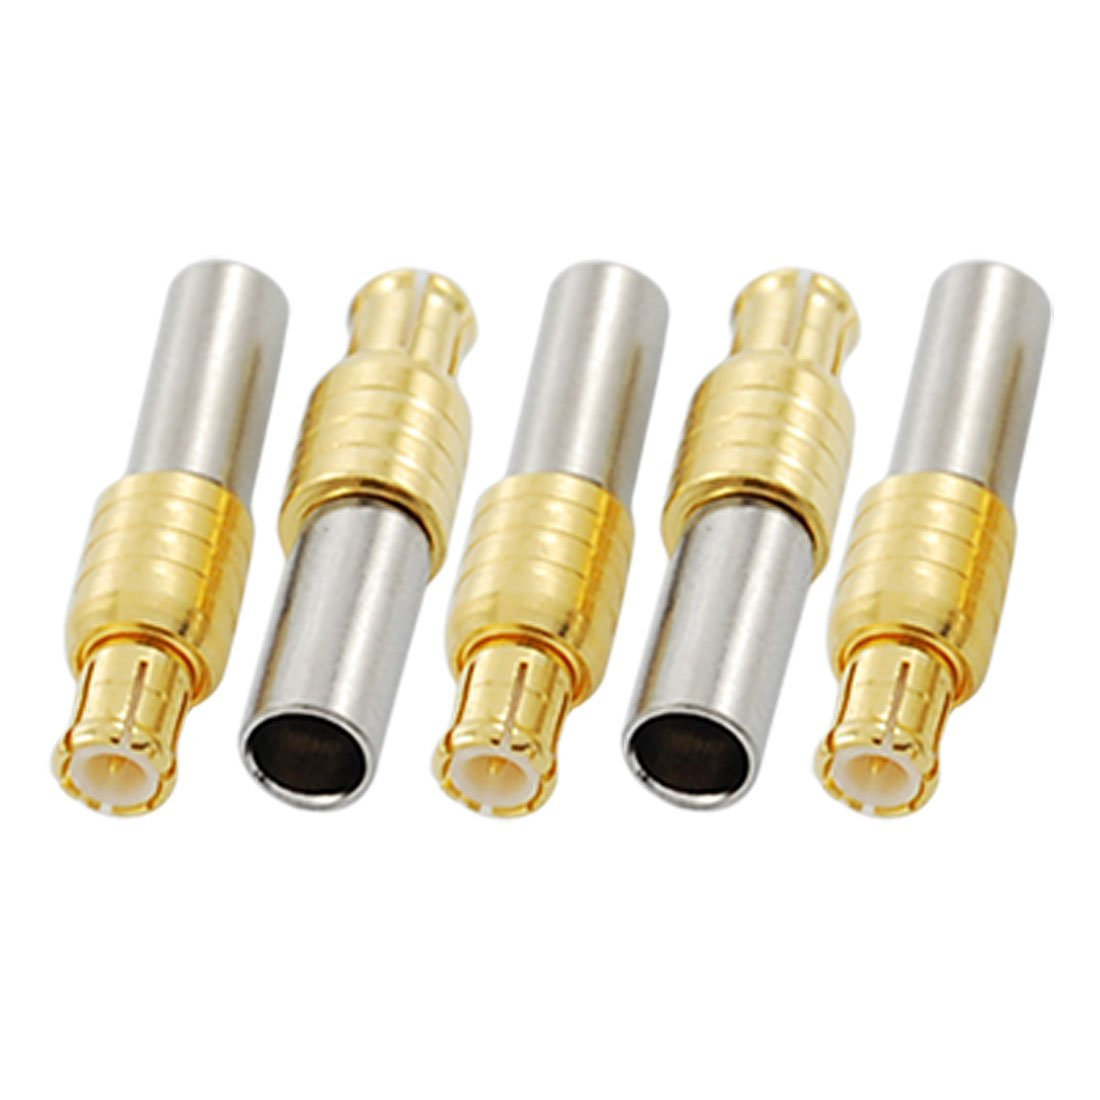 Promotion! 5pcs MCX Male Plug Straight RF Adapter Connector For RG179 Cable